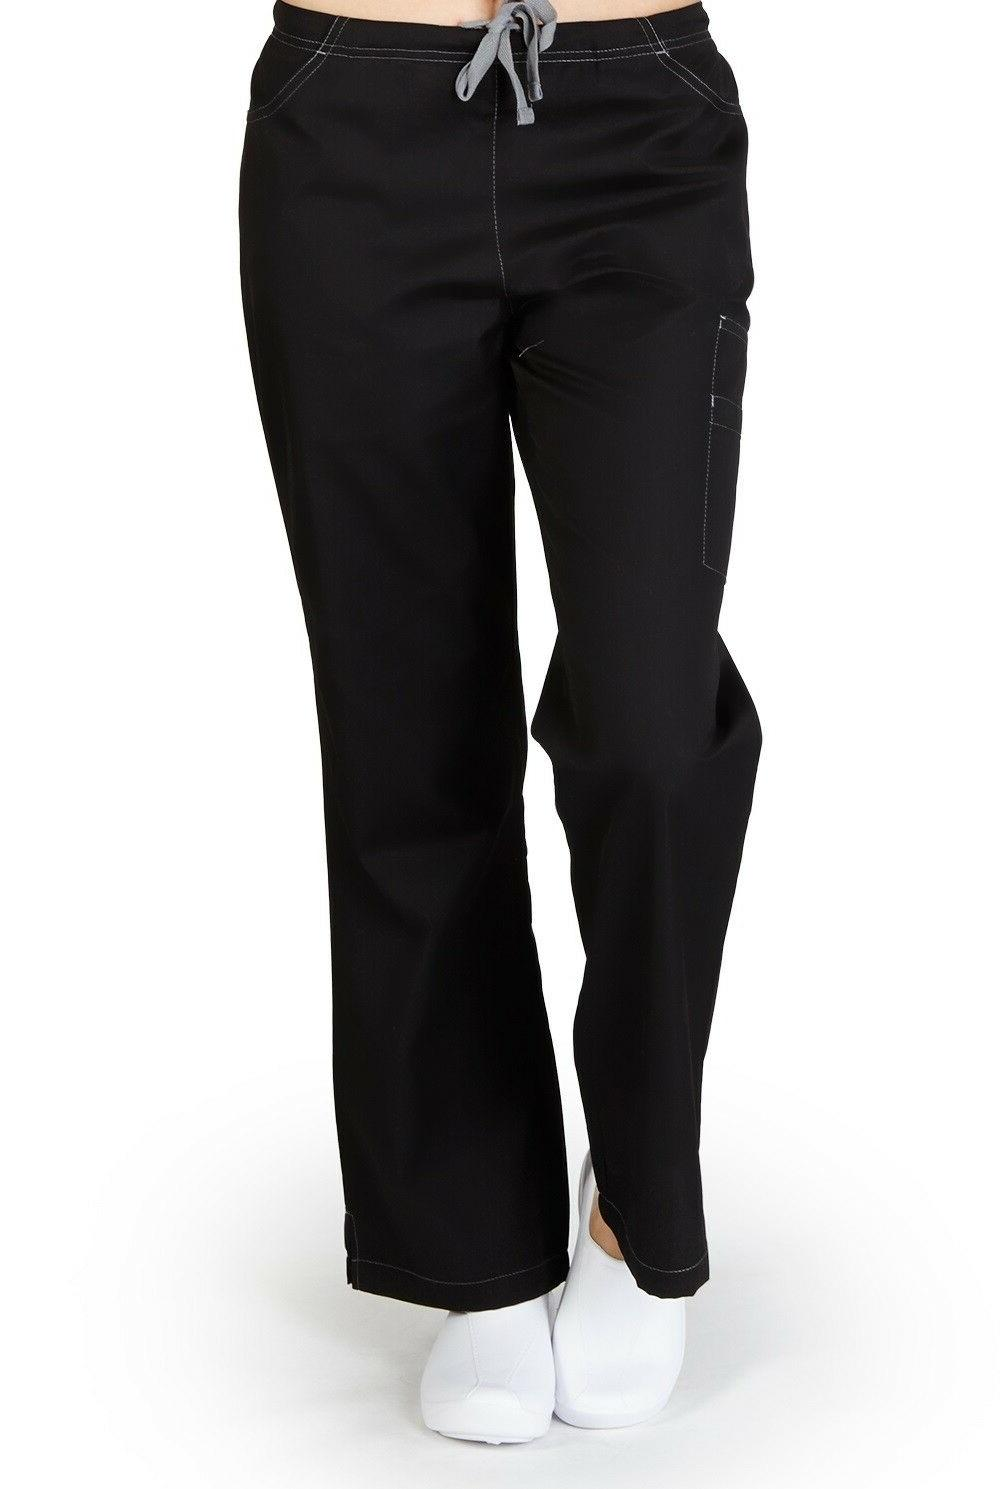 M&M SCRUBS Two Tone, Two Front Pocket With 2 Cargo Pocket Fl